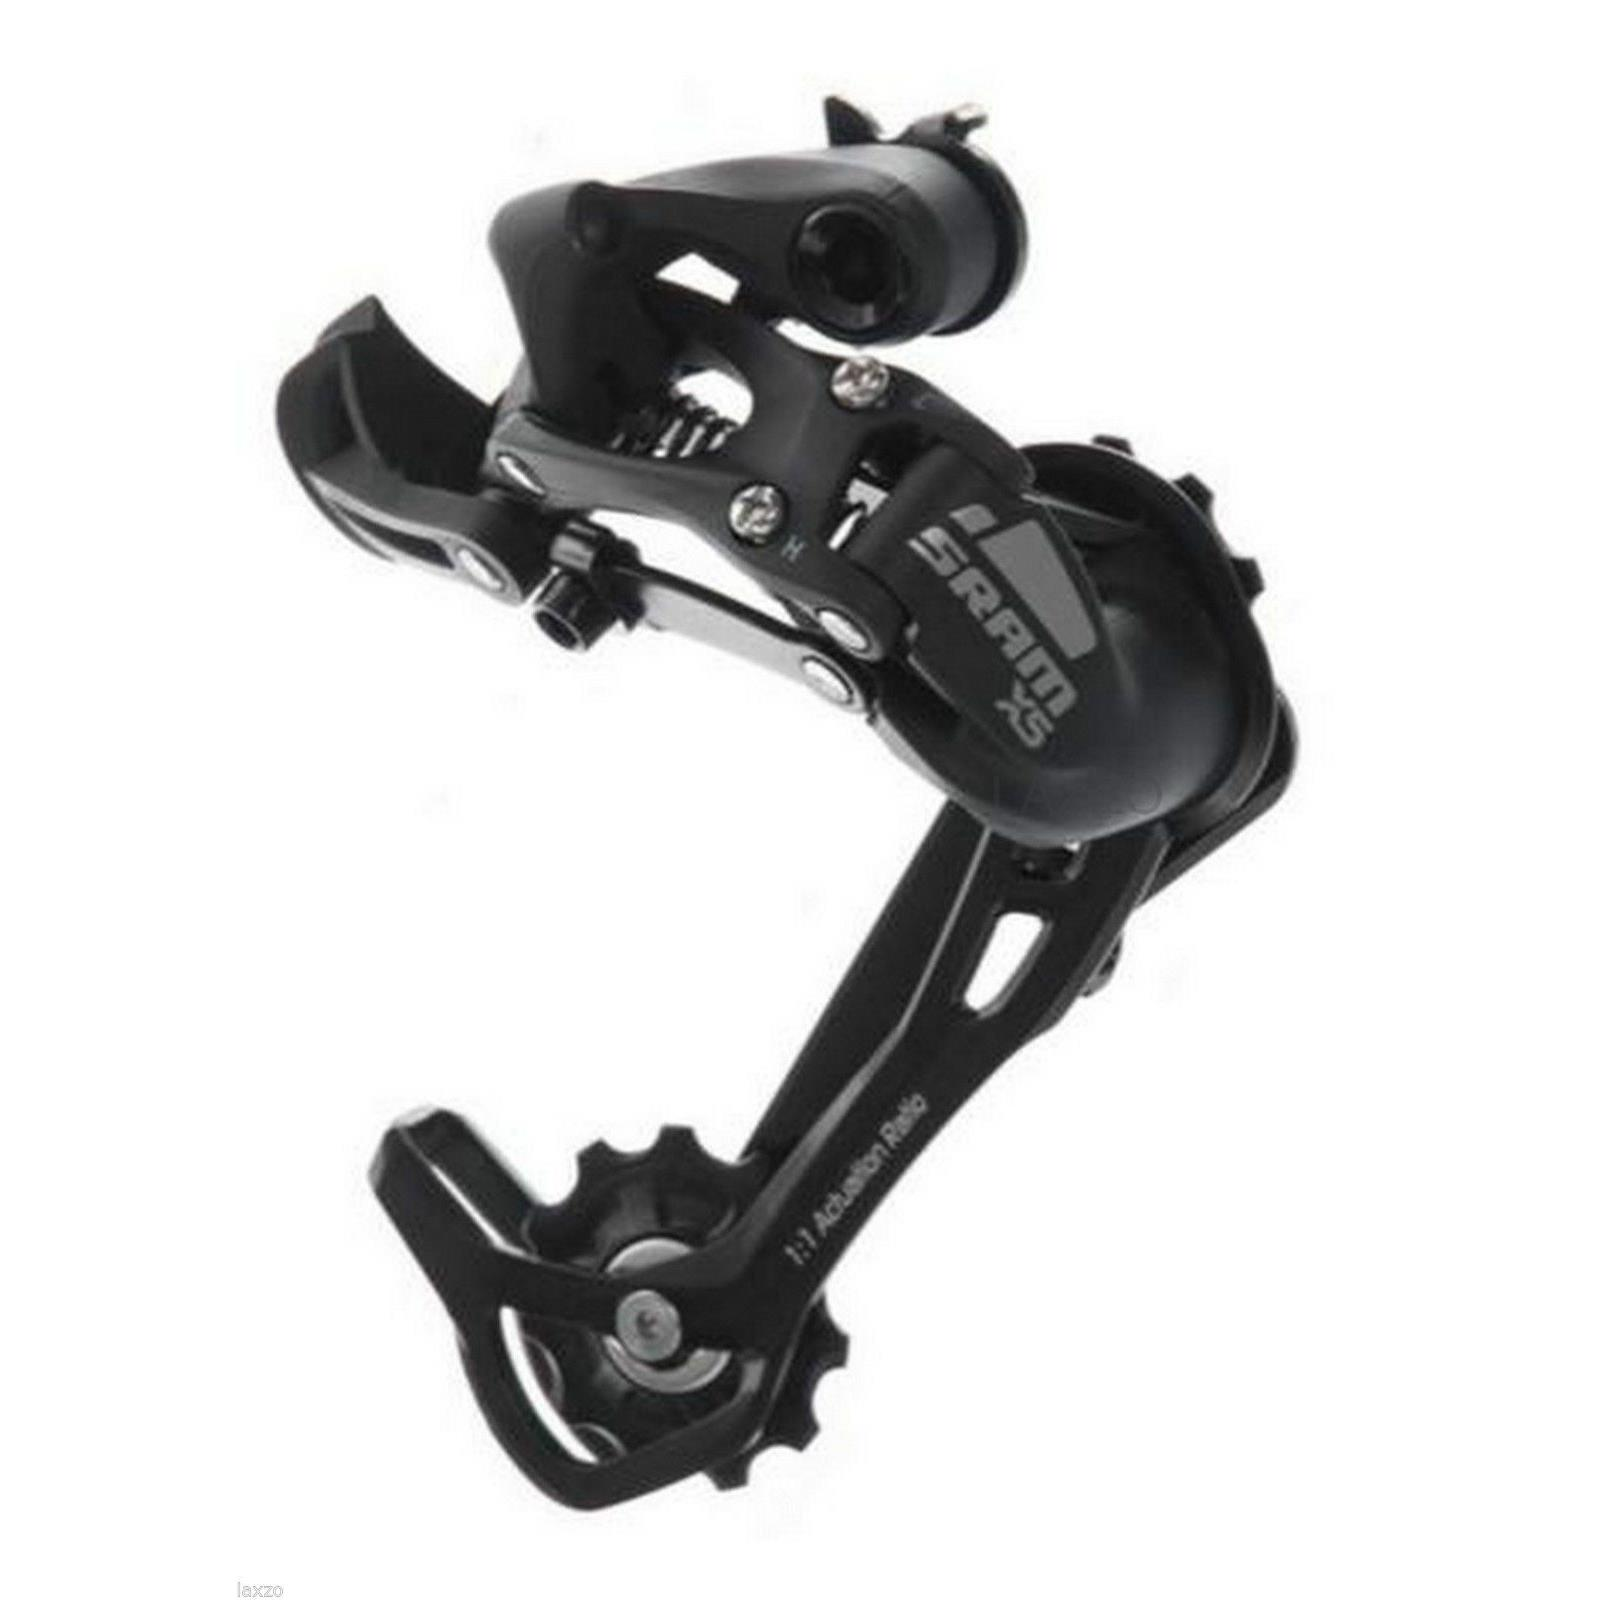 SRAM X5 Rear Derailleur 10S MTB bike mountain road bicycle Long cage Updated